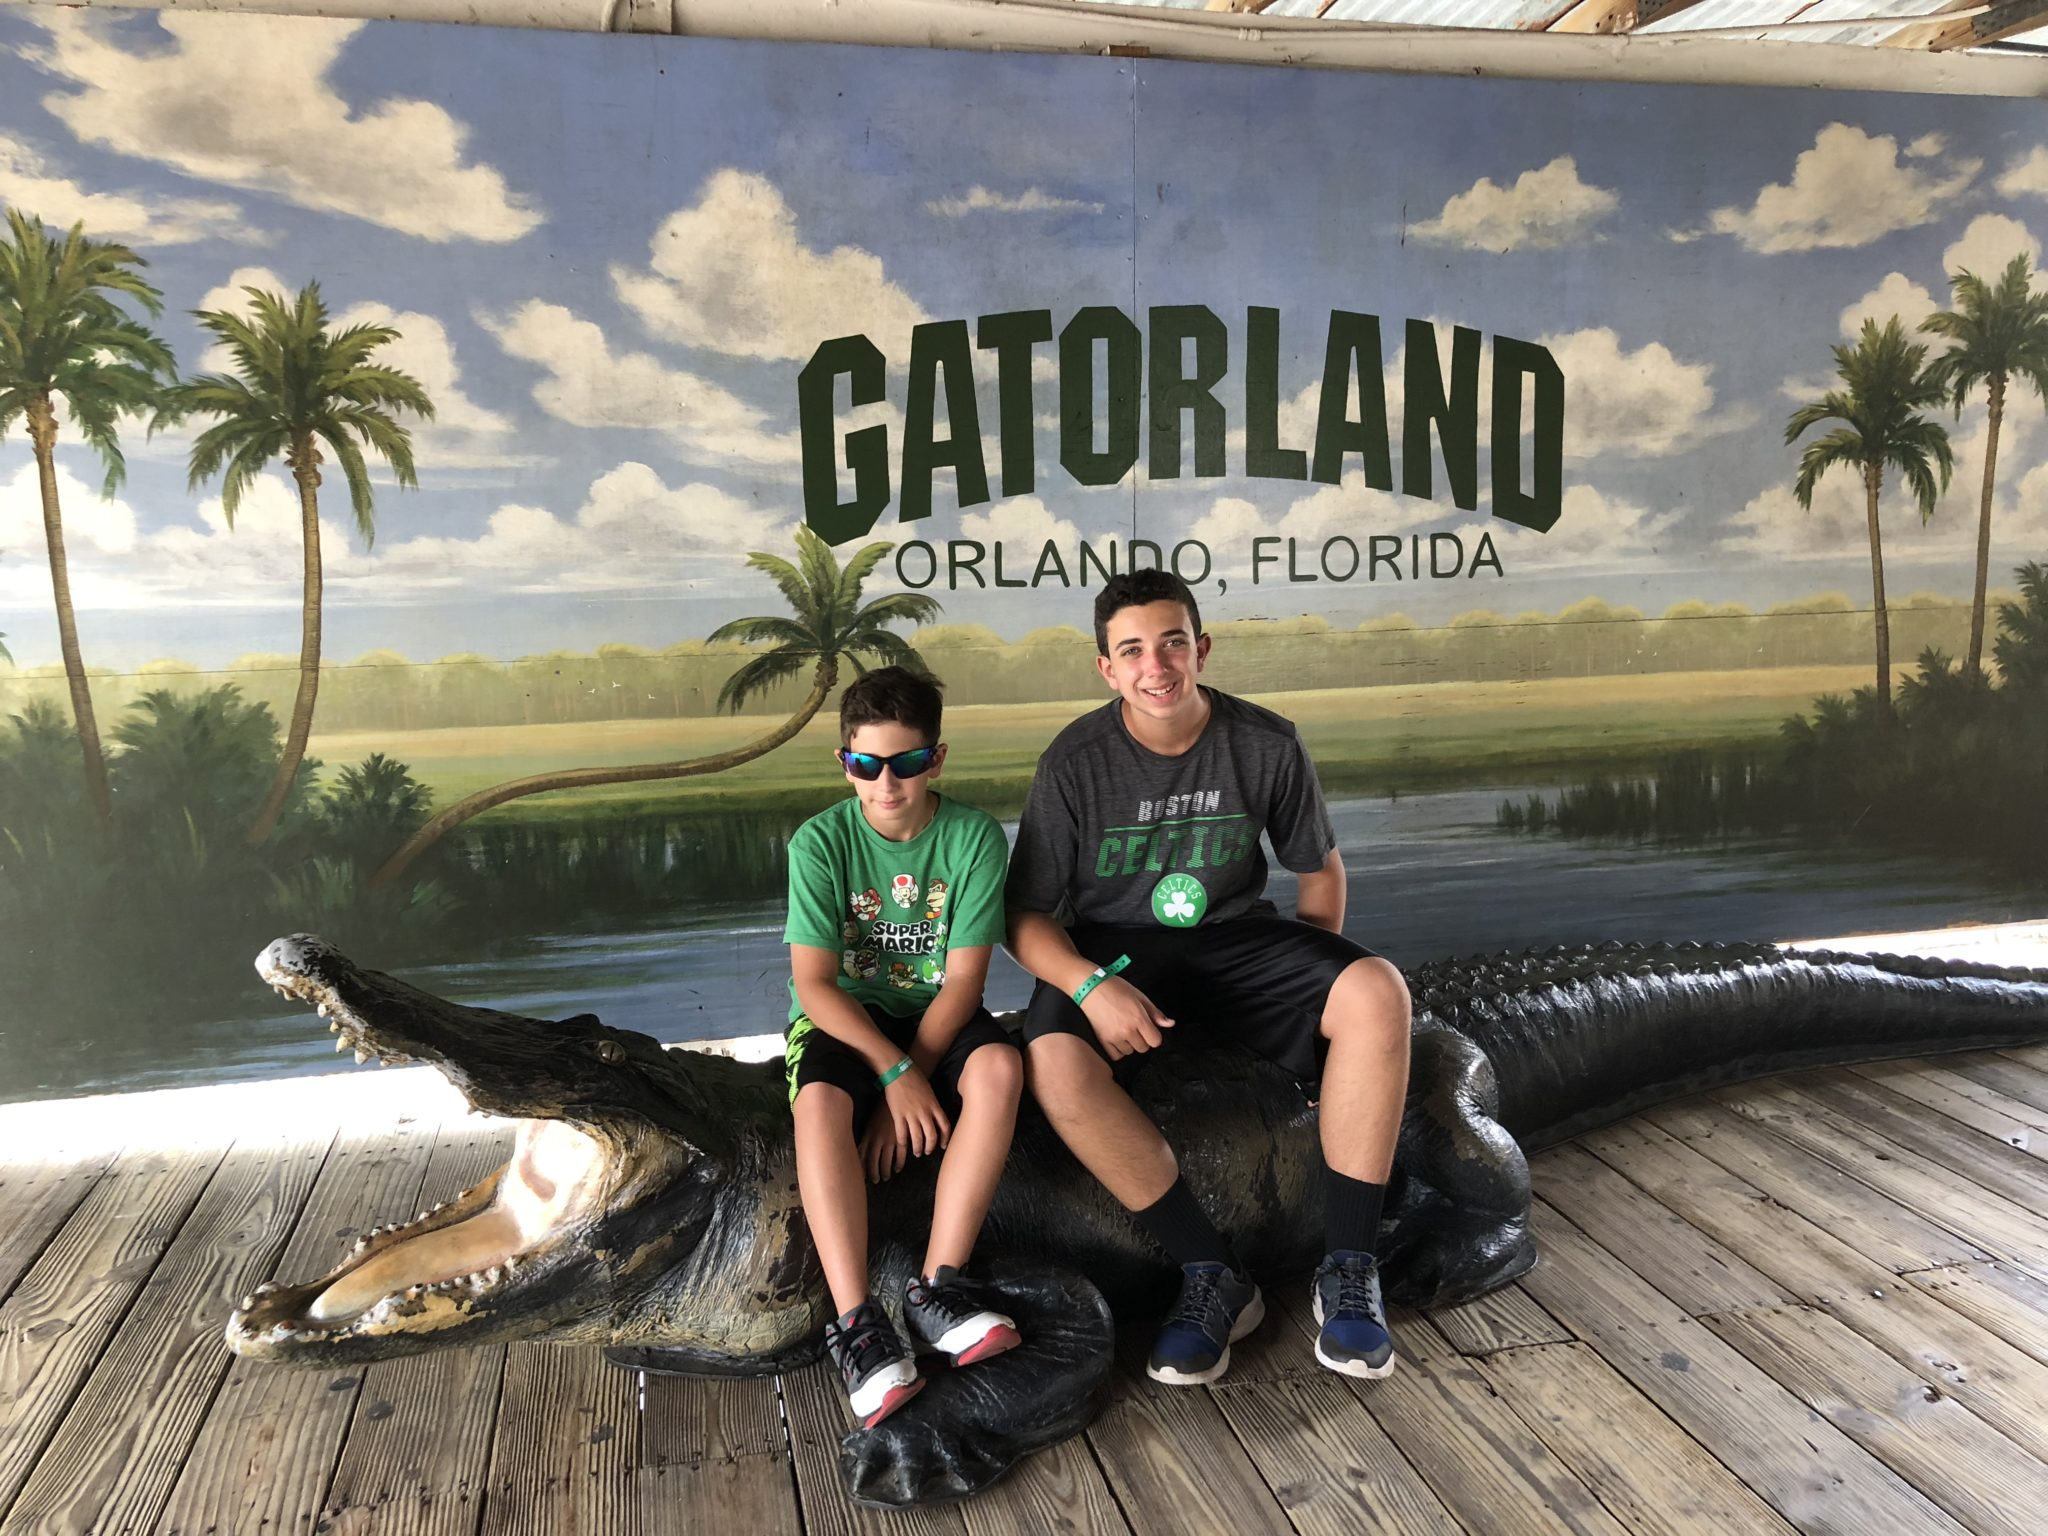 If you are looking for a fun day of making memories with your family in Orlando, head to Gatorland. There's a lot more there than just gators!